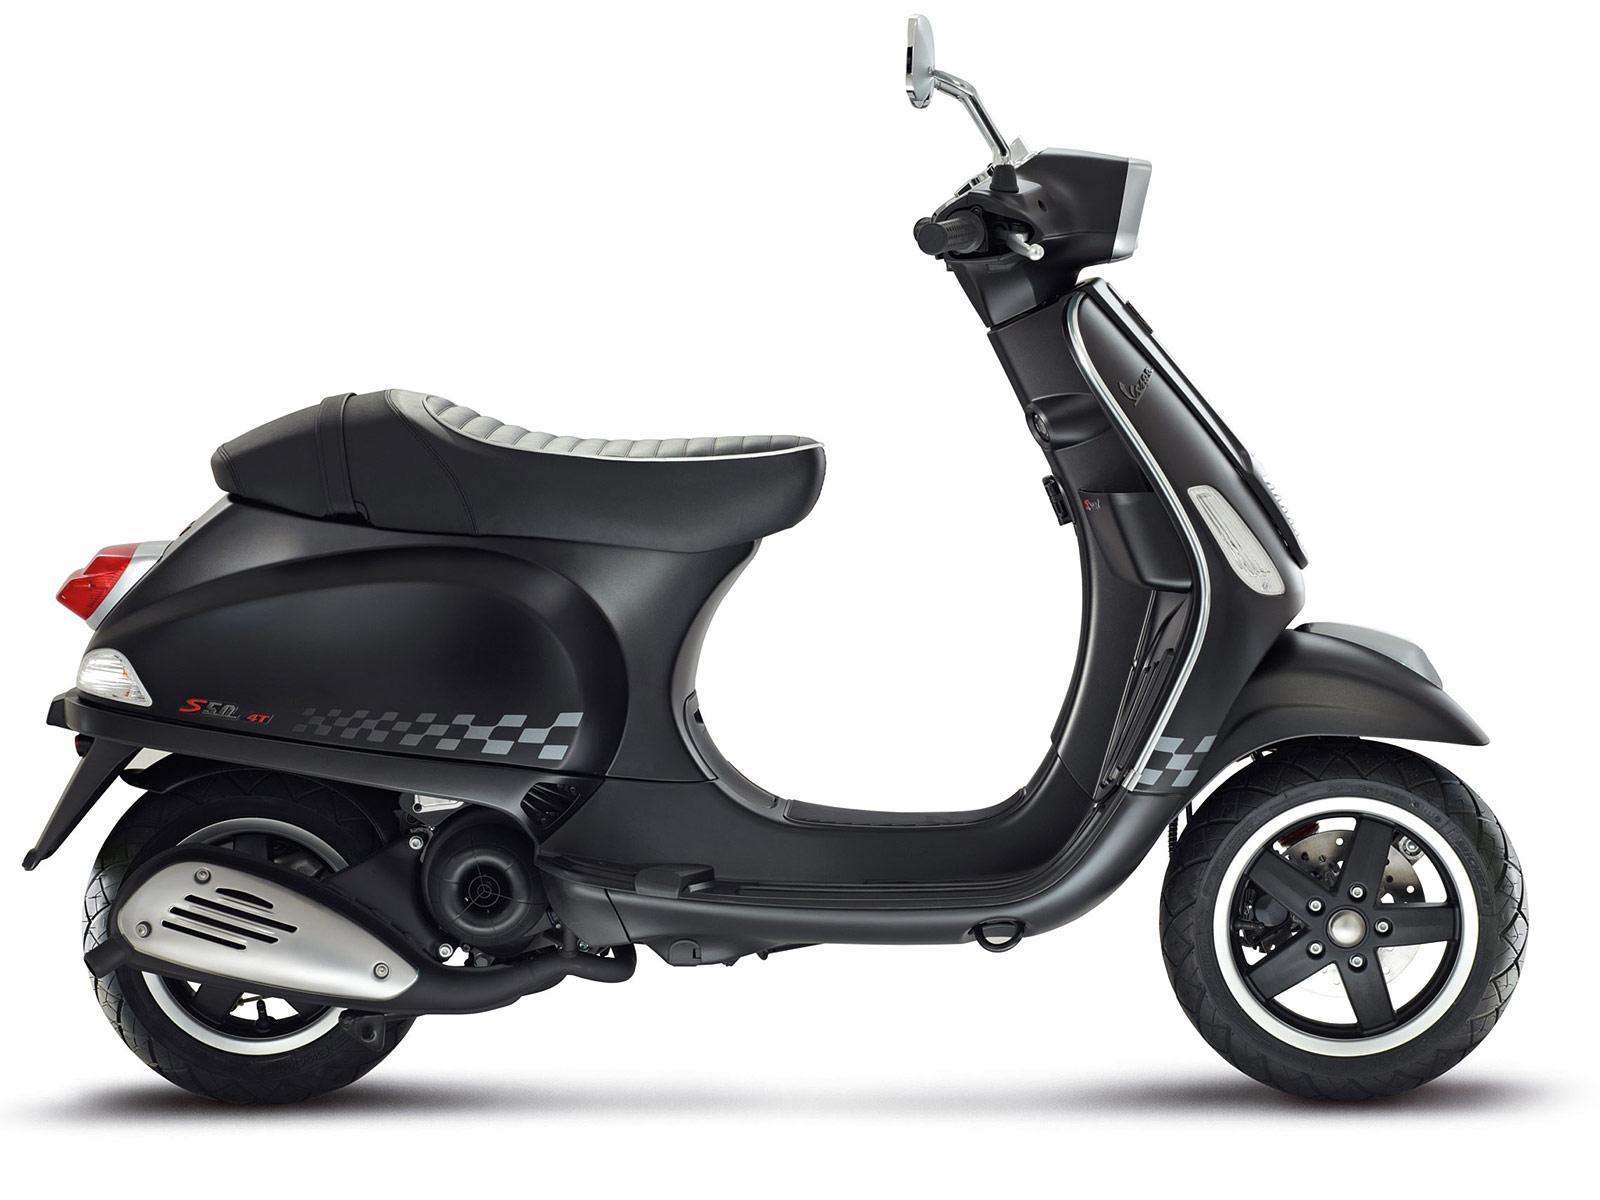 scooter pictures specifications auto insurance information 2013 vespa s50 super sport se scooter pictures specifications scooter pictures specifications auto insurance information 2013 vespa s50 super sport se scooter pictures specifications